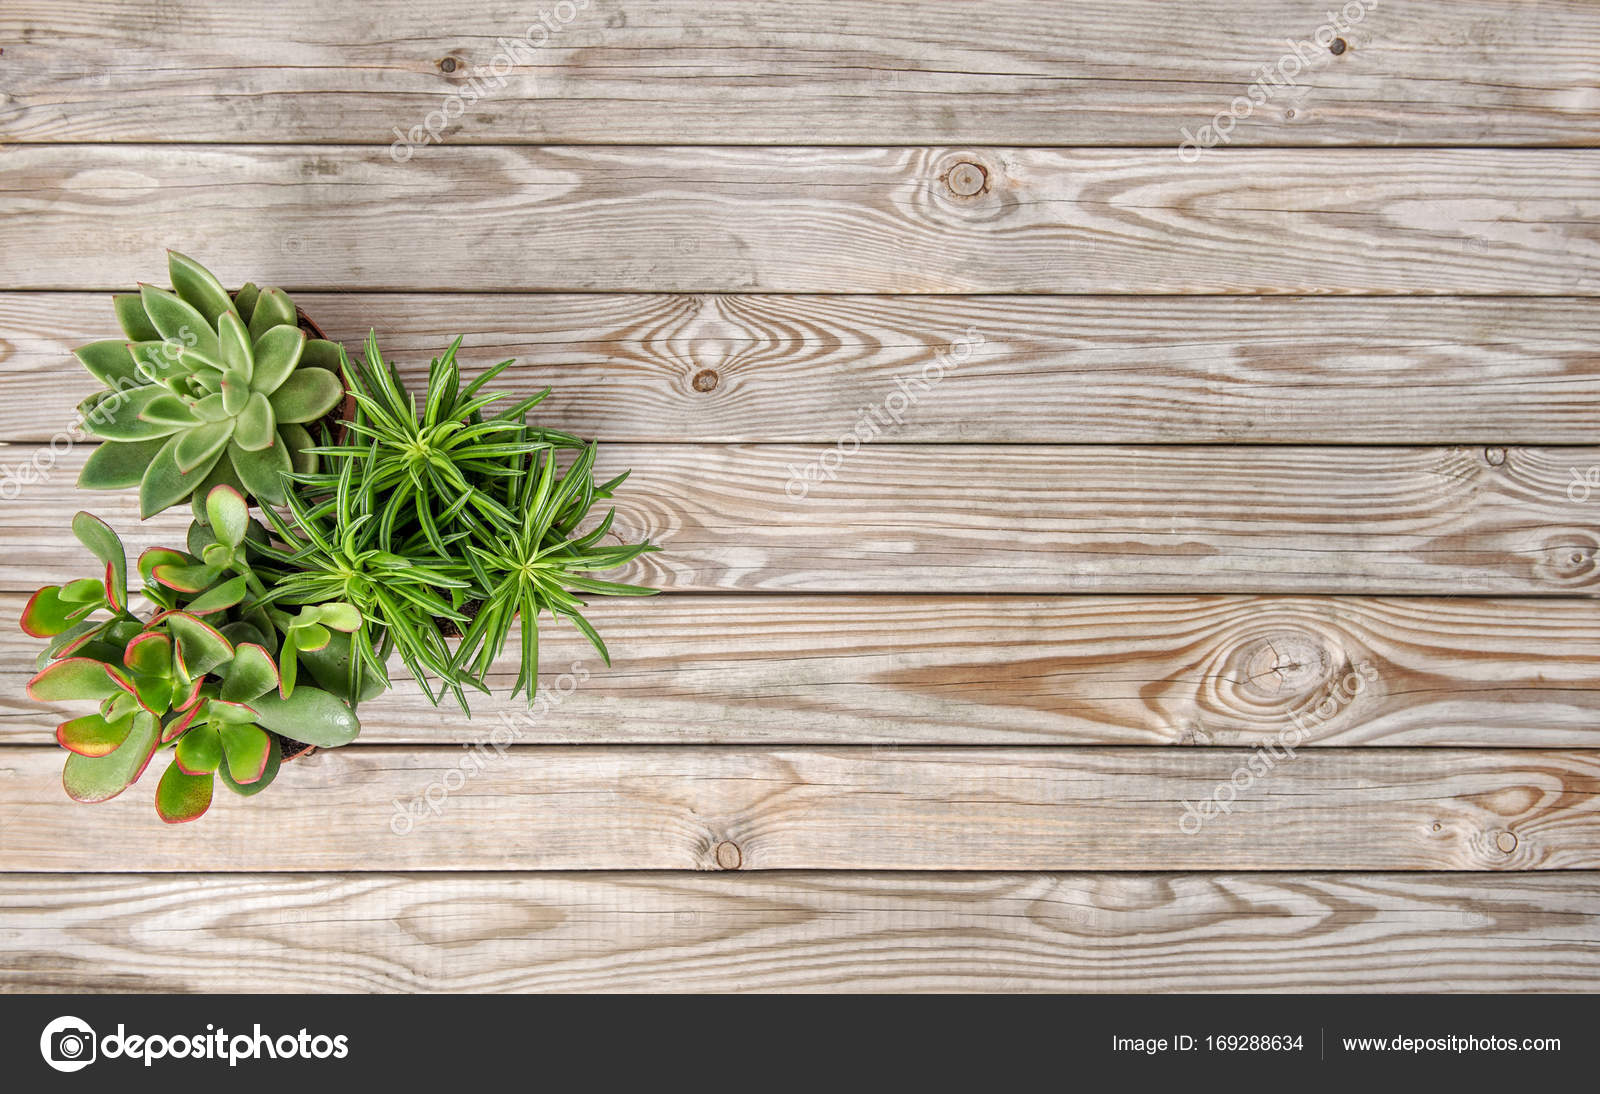 Succulent Plants Vintage Wooden Background Floral Flat Lay Stock Photo Image By C Liligraphie 169288634